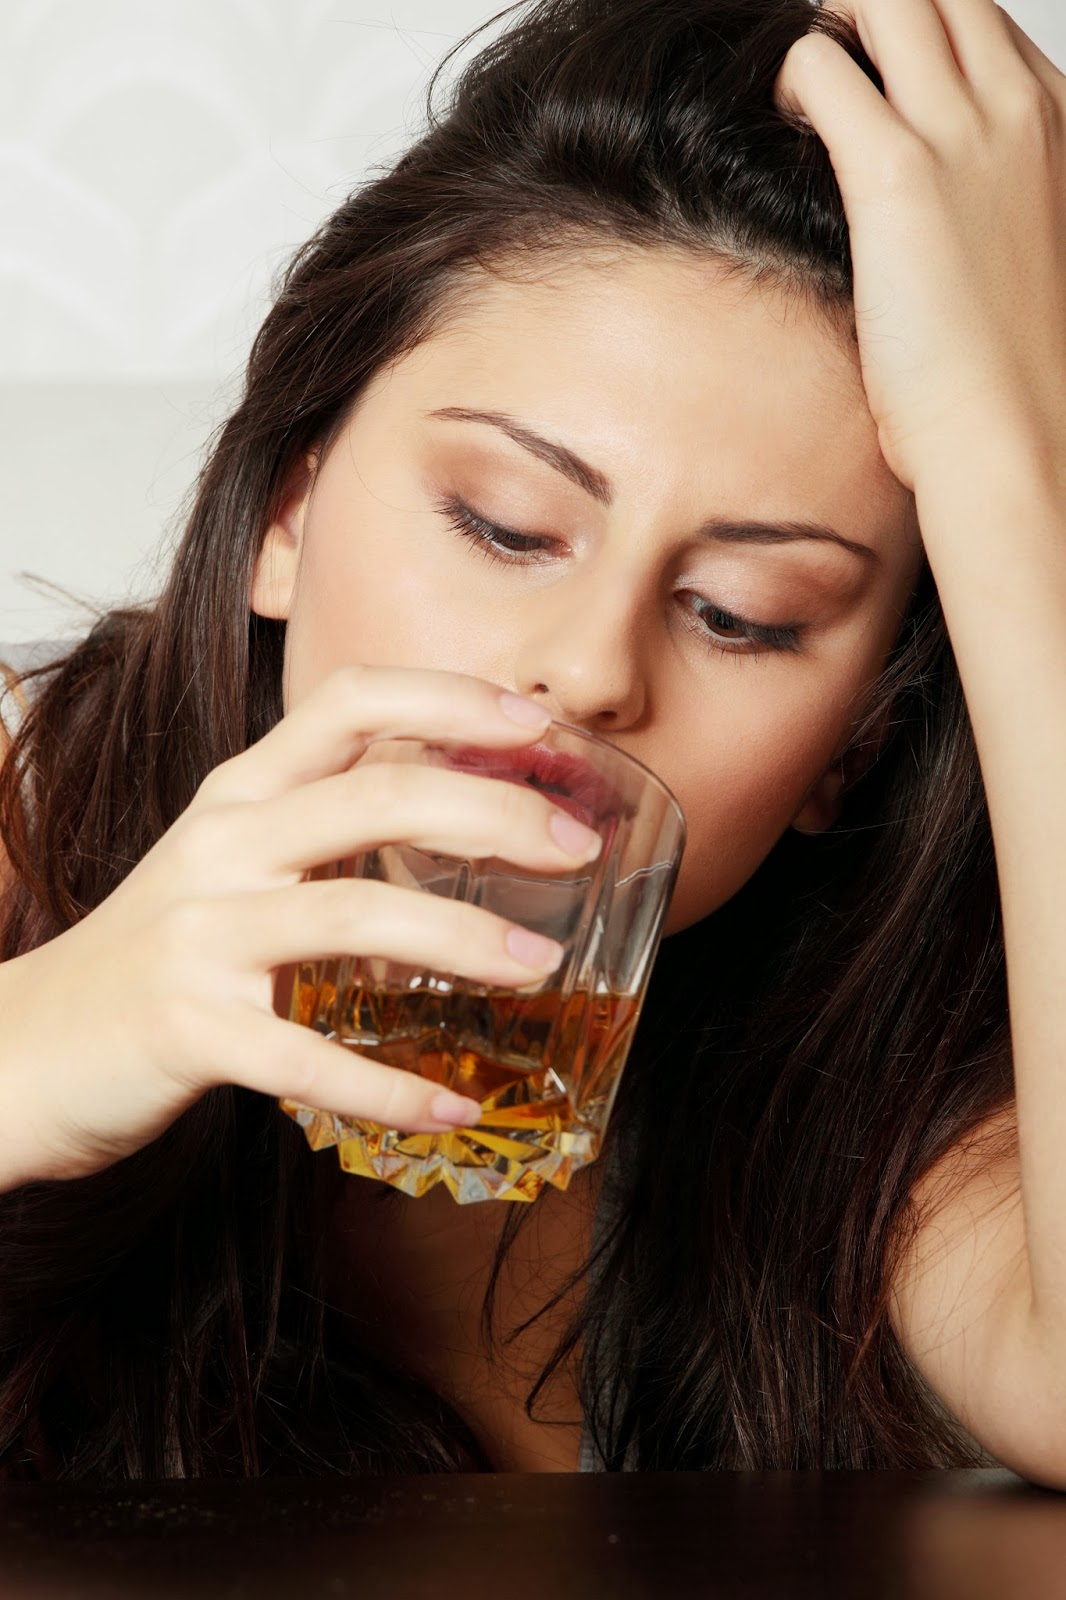 an analysis of the concept of drinking and the issues with alcohol Alcohol can cause physical, mental and social effects, which are determined by both the amount of alcohol consumed and the pattern of drinking.